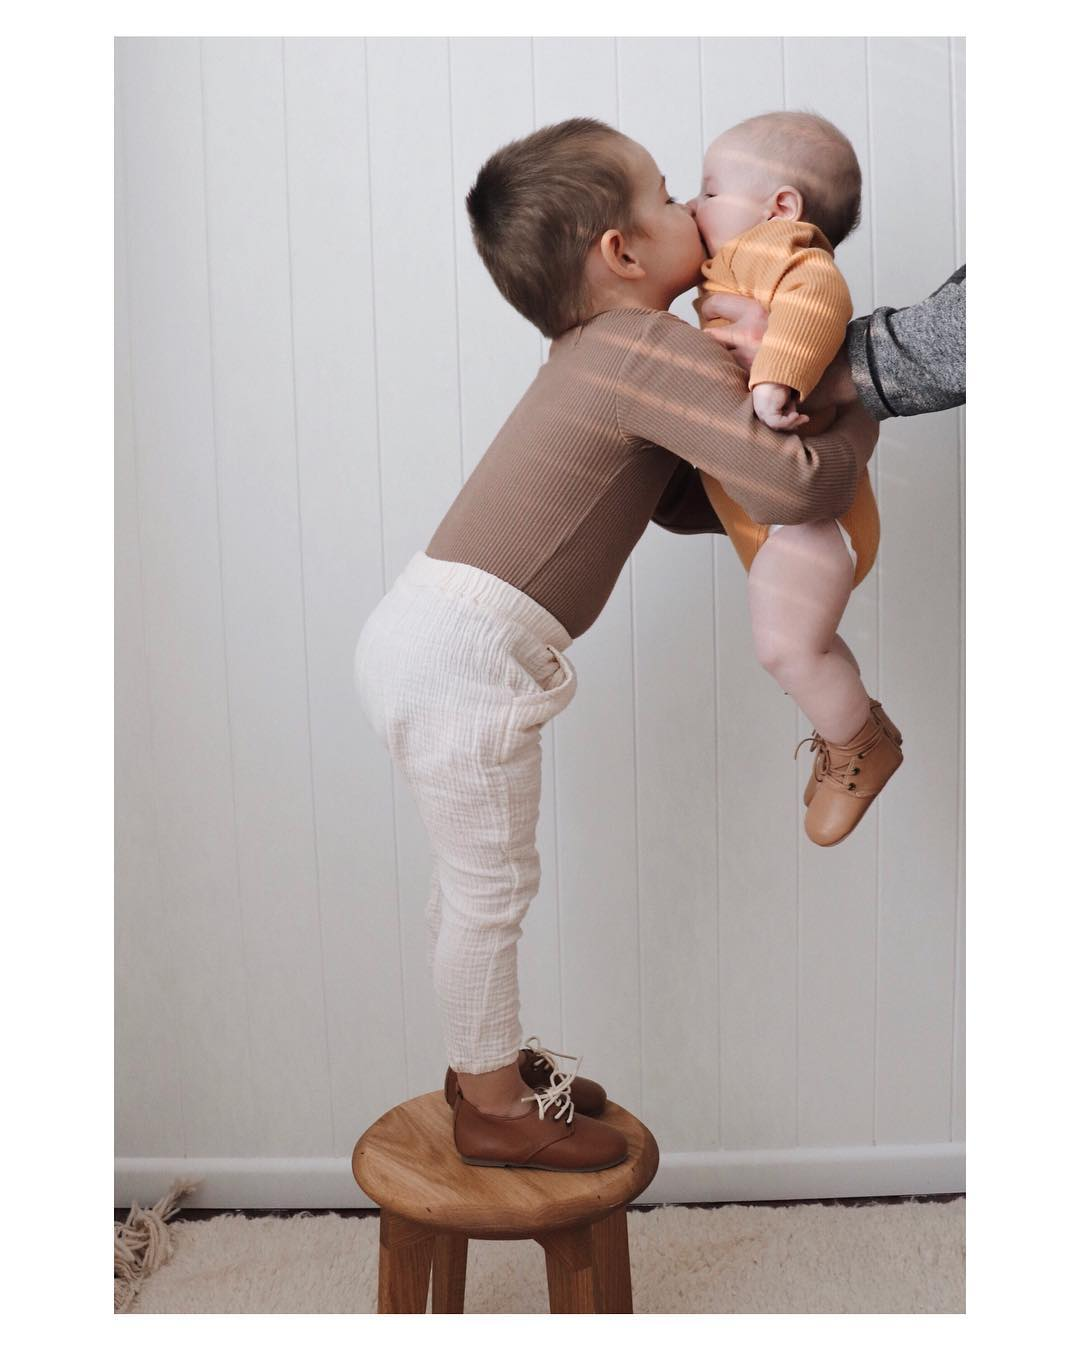 Quality_baby_shoes_for_children,_toddlers_and_babies._Soft_soles,_natural_leather _4706_width=480x480